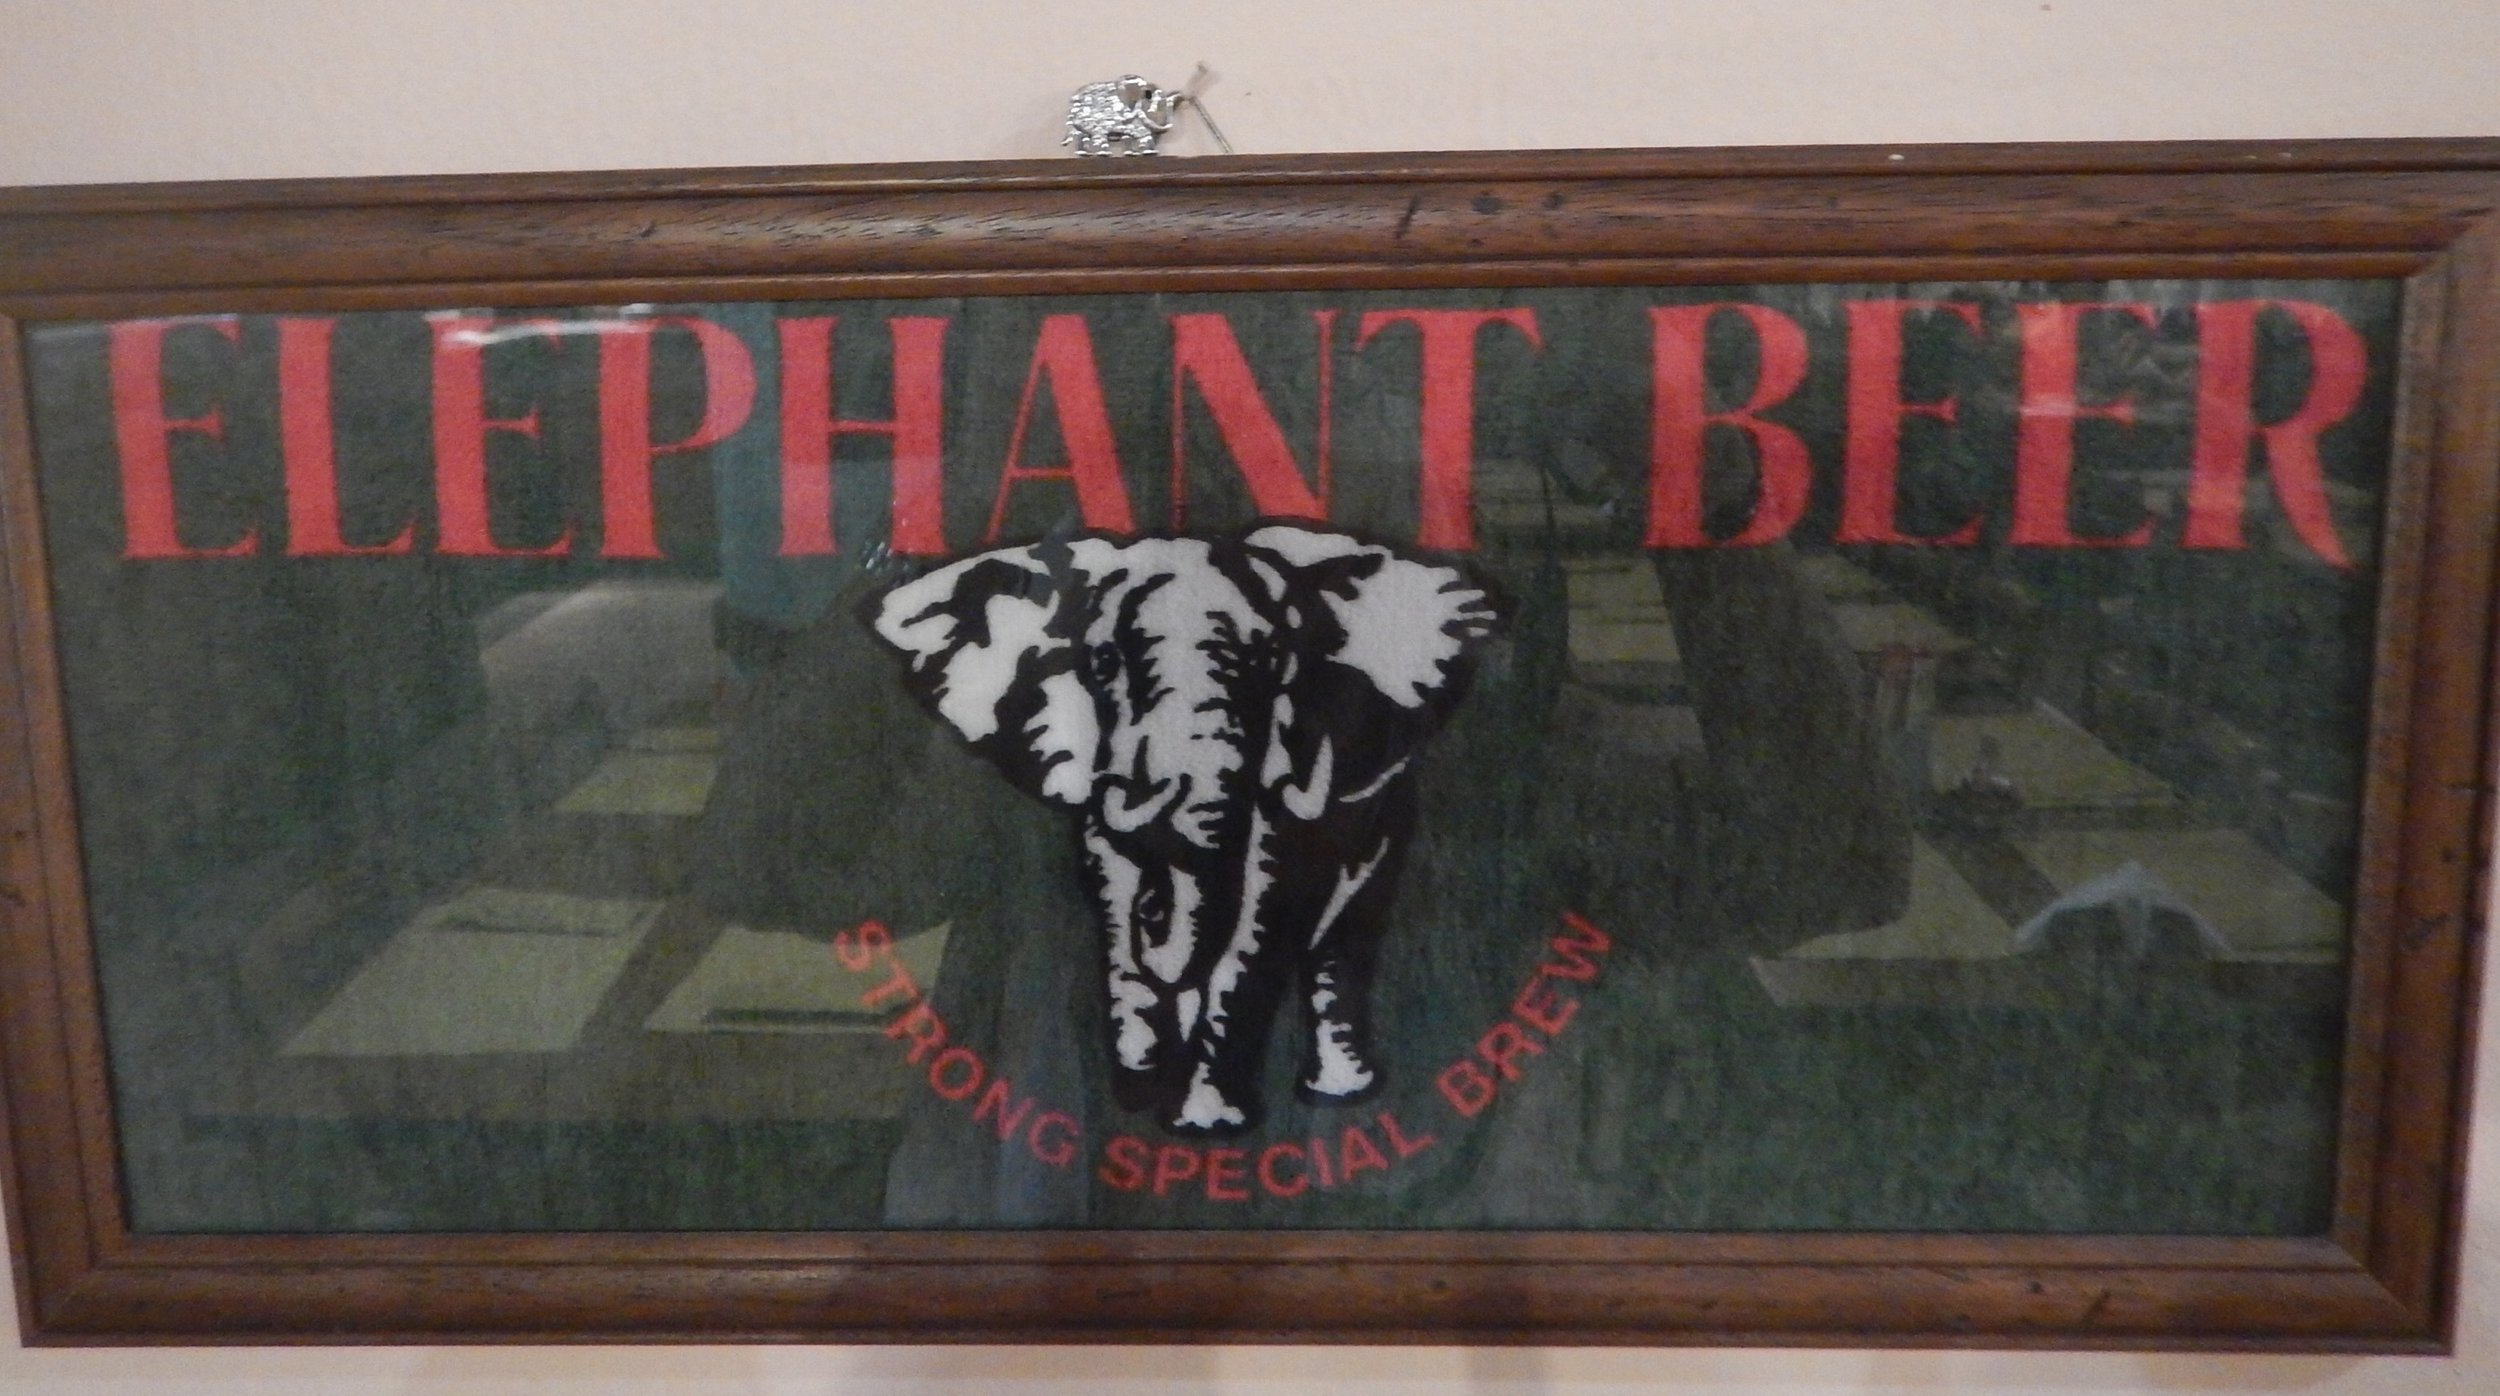 Elephant beer in Italy!!